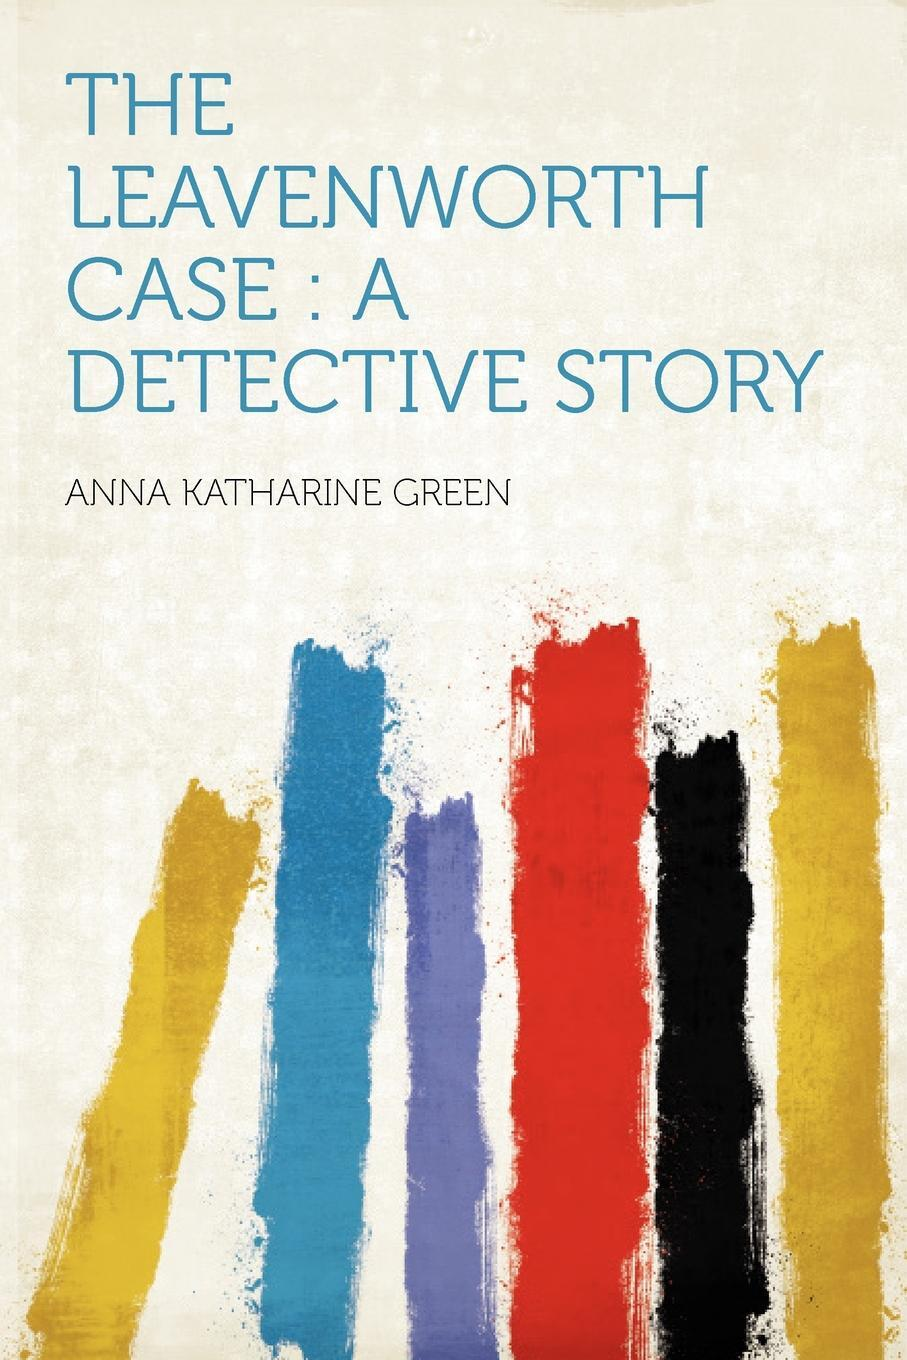 The Leavenworth Case. a Detective Story